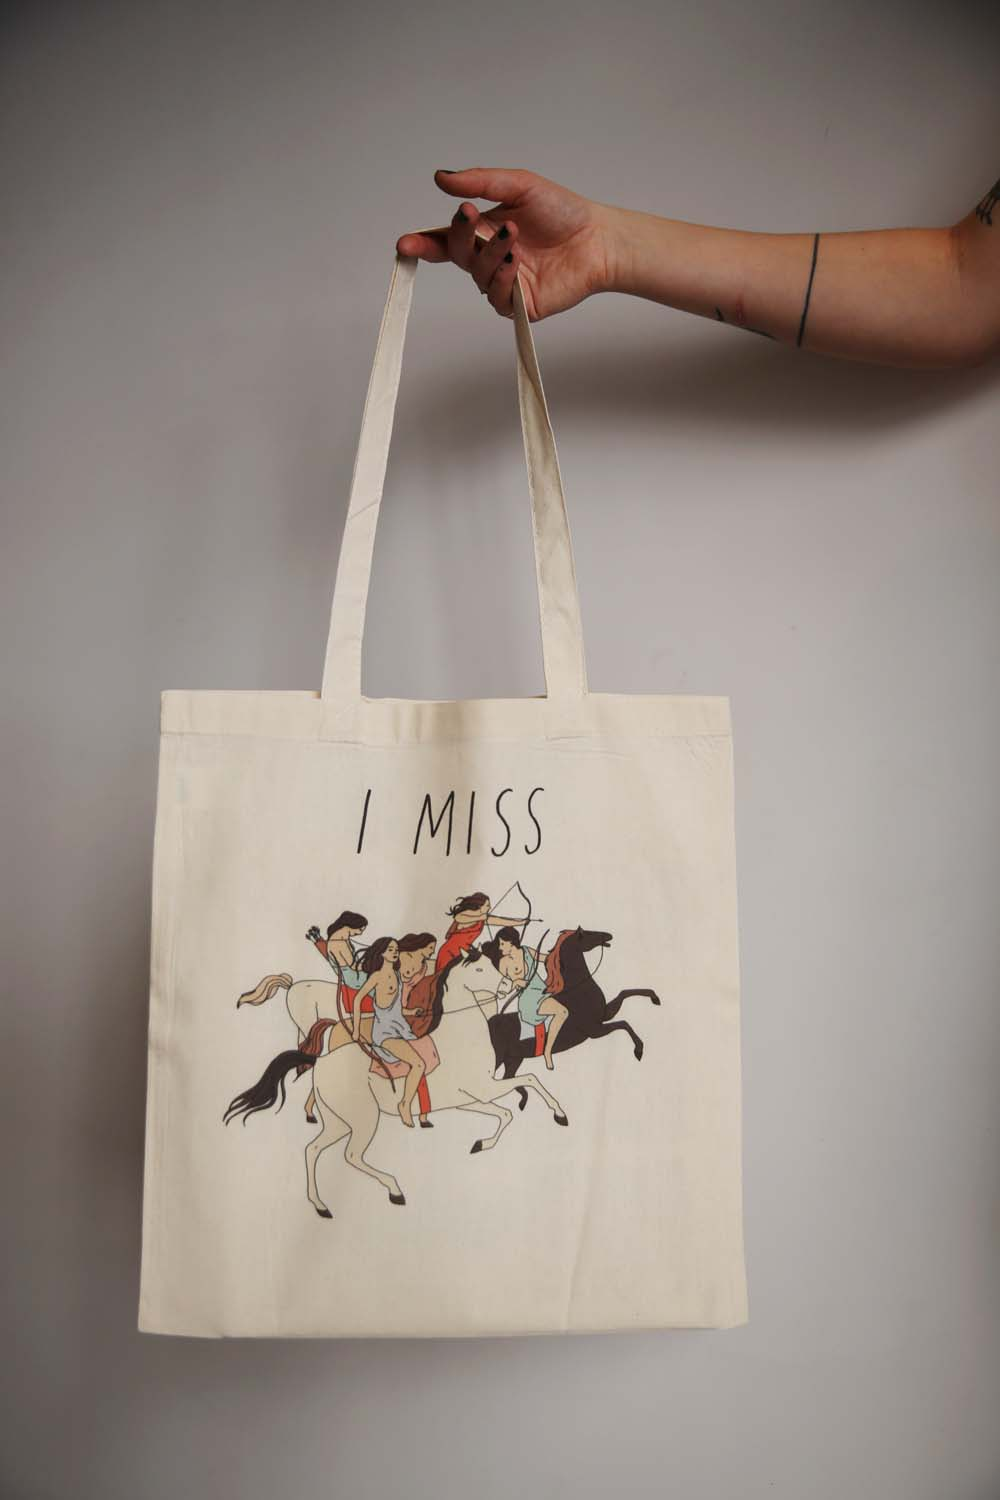 I MISS THE AMAZONS tote bag